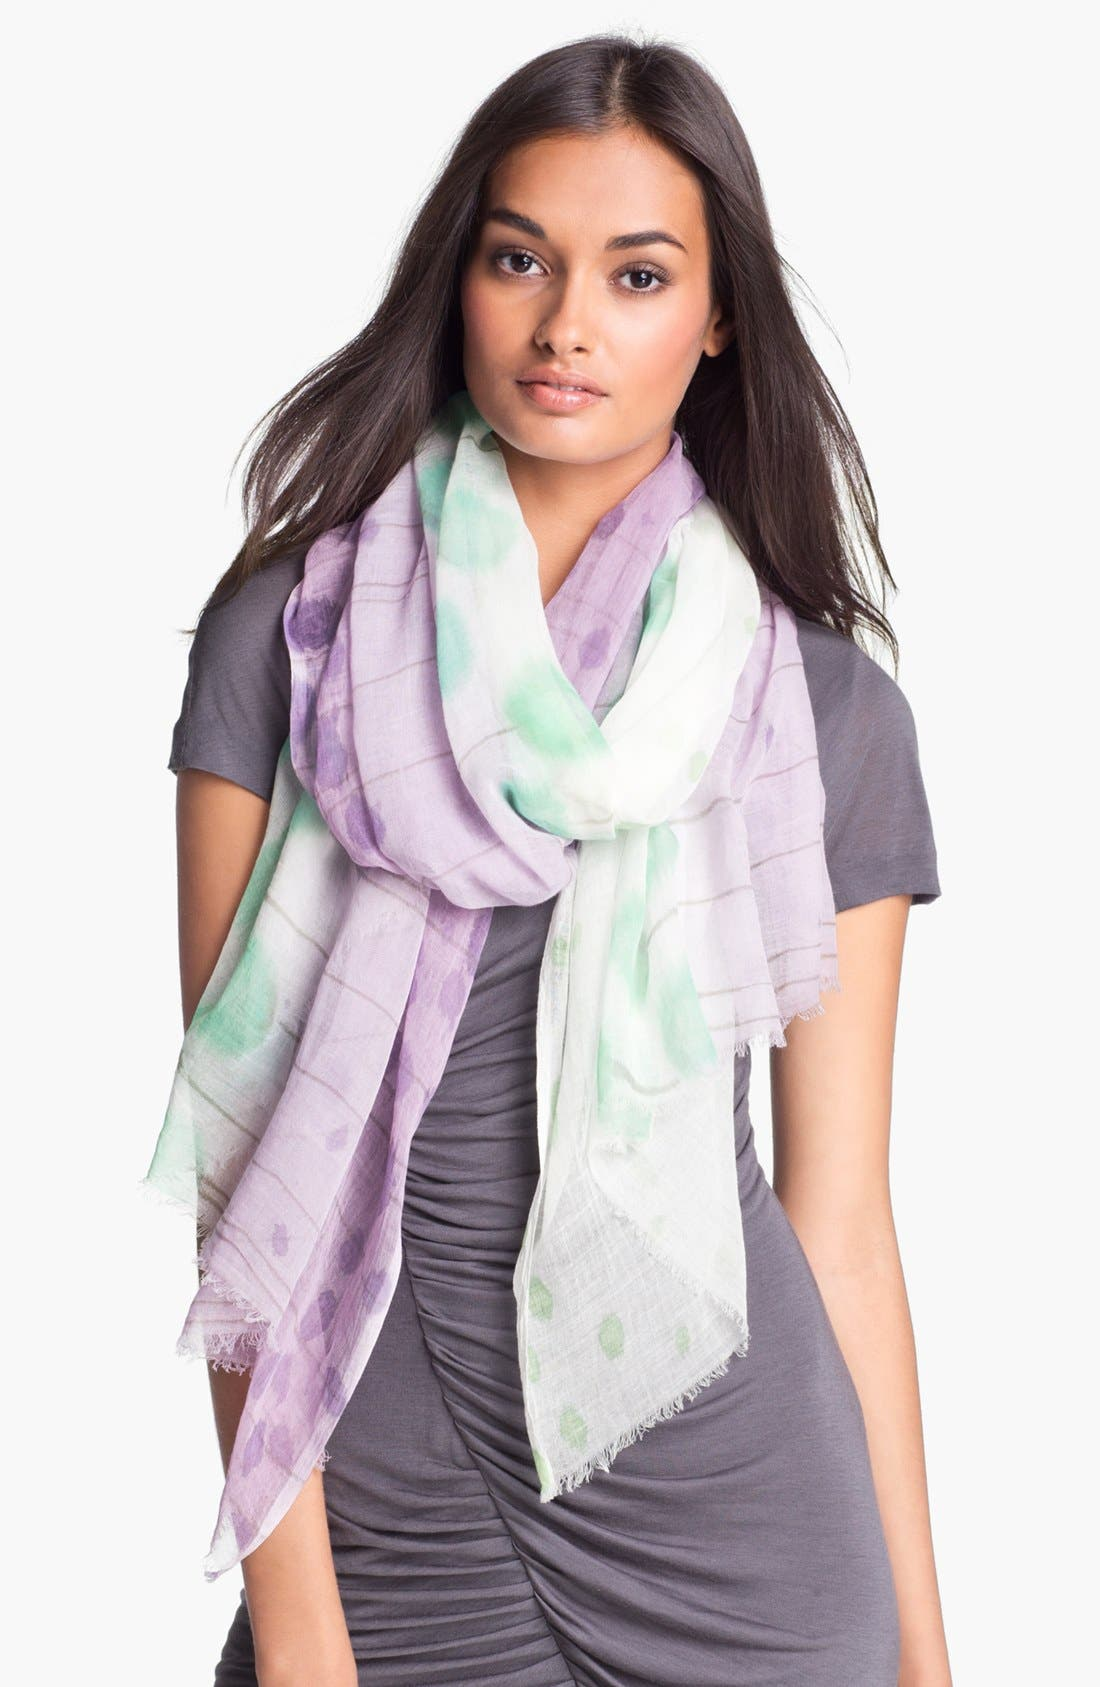 Alternate Image 1 Selected - Nordstrom 'Ethereal Garden' Scarf